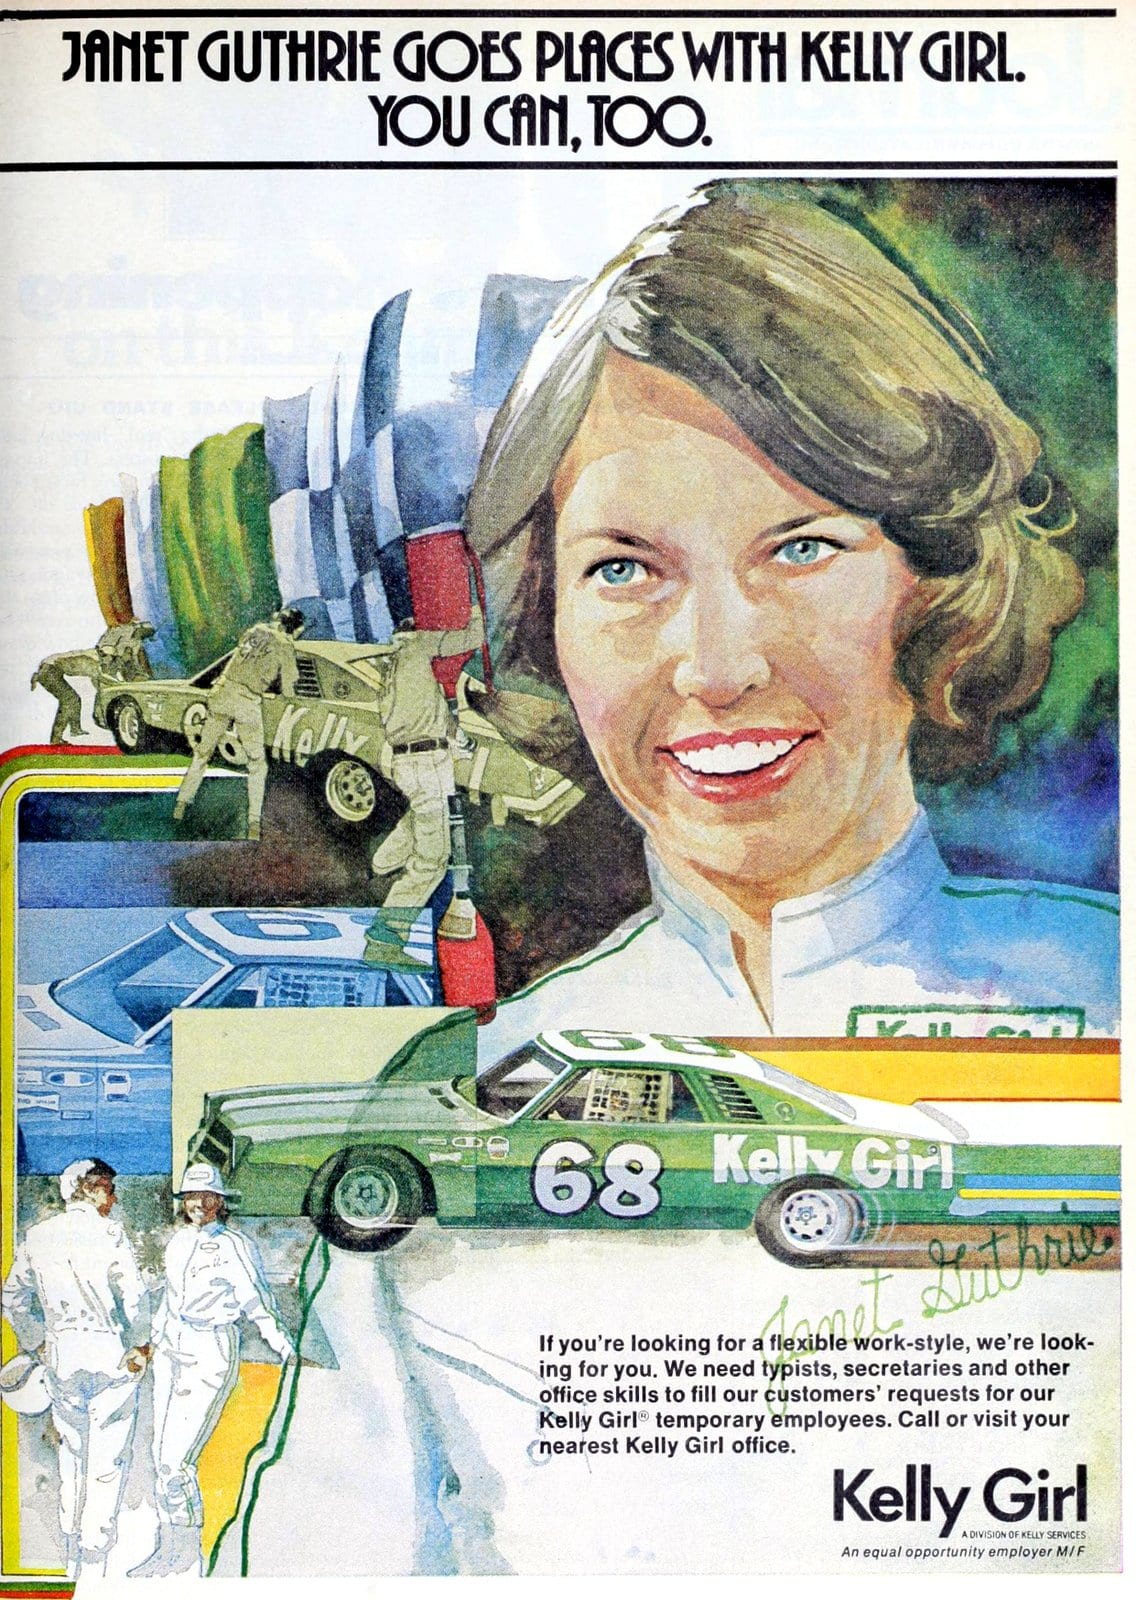 Racecar driver Janet Guthrie for Kelly Girl temps (1977)